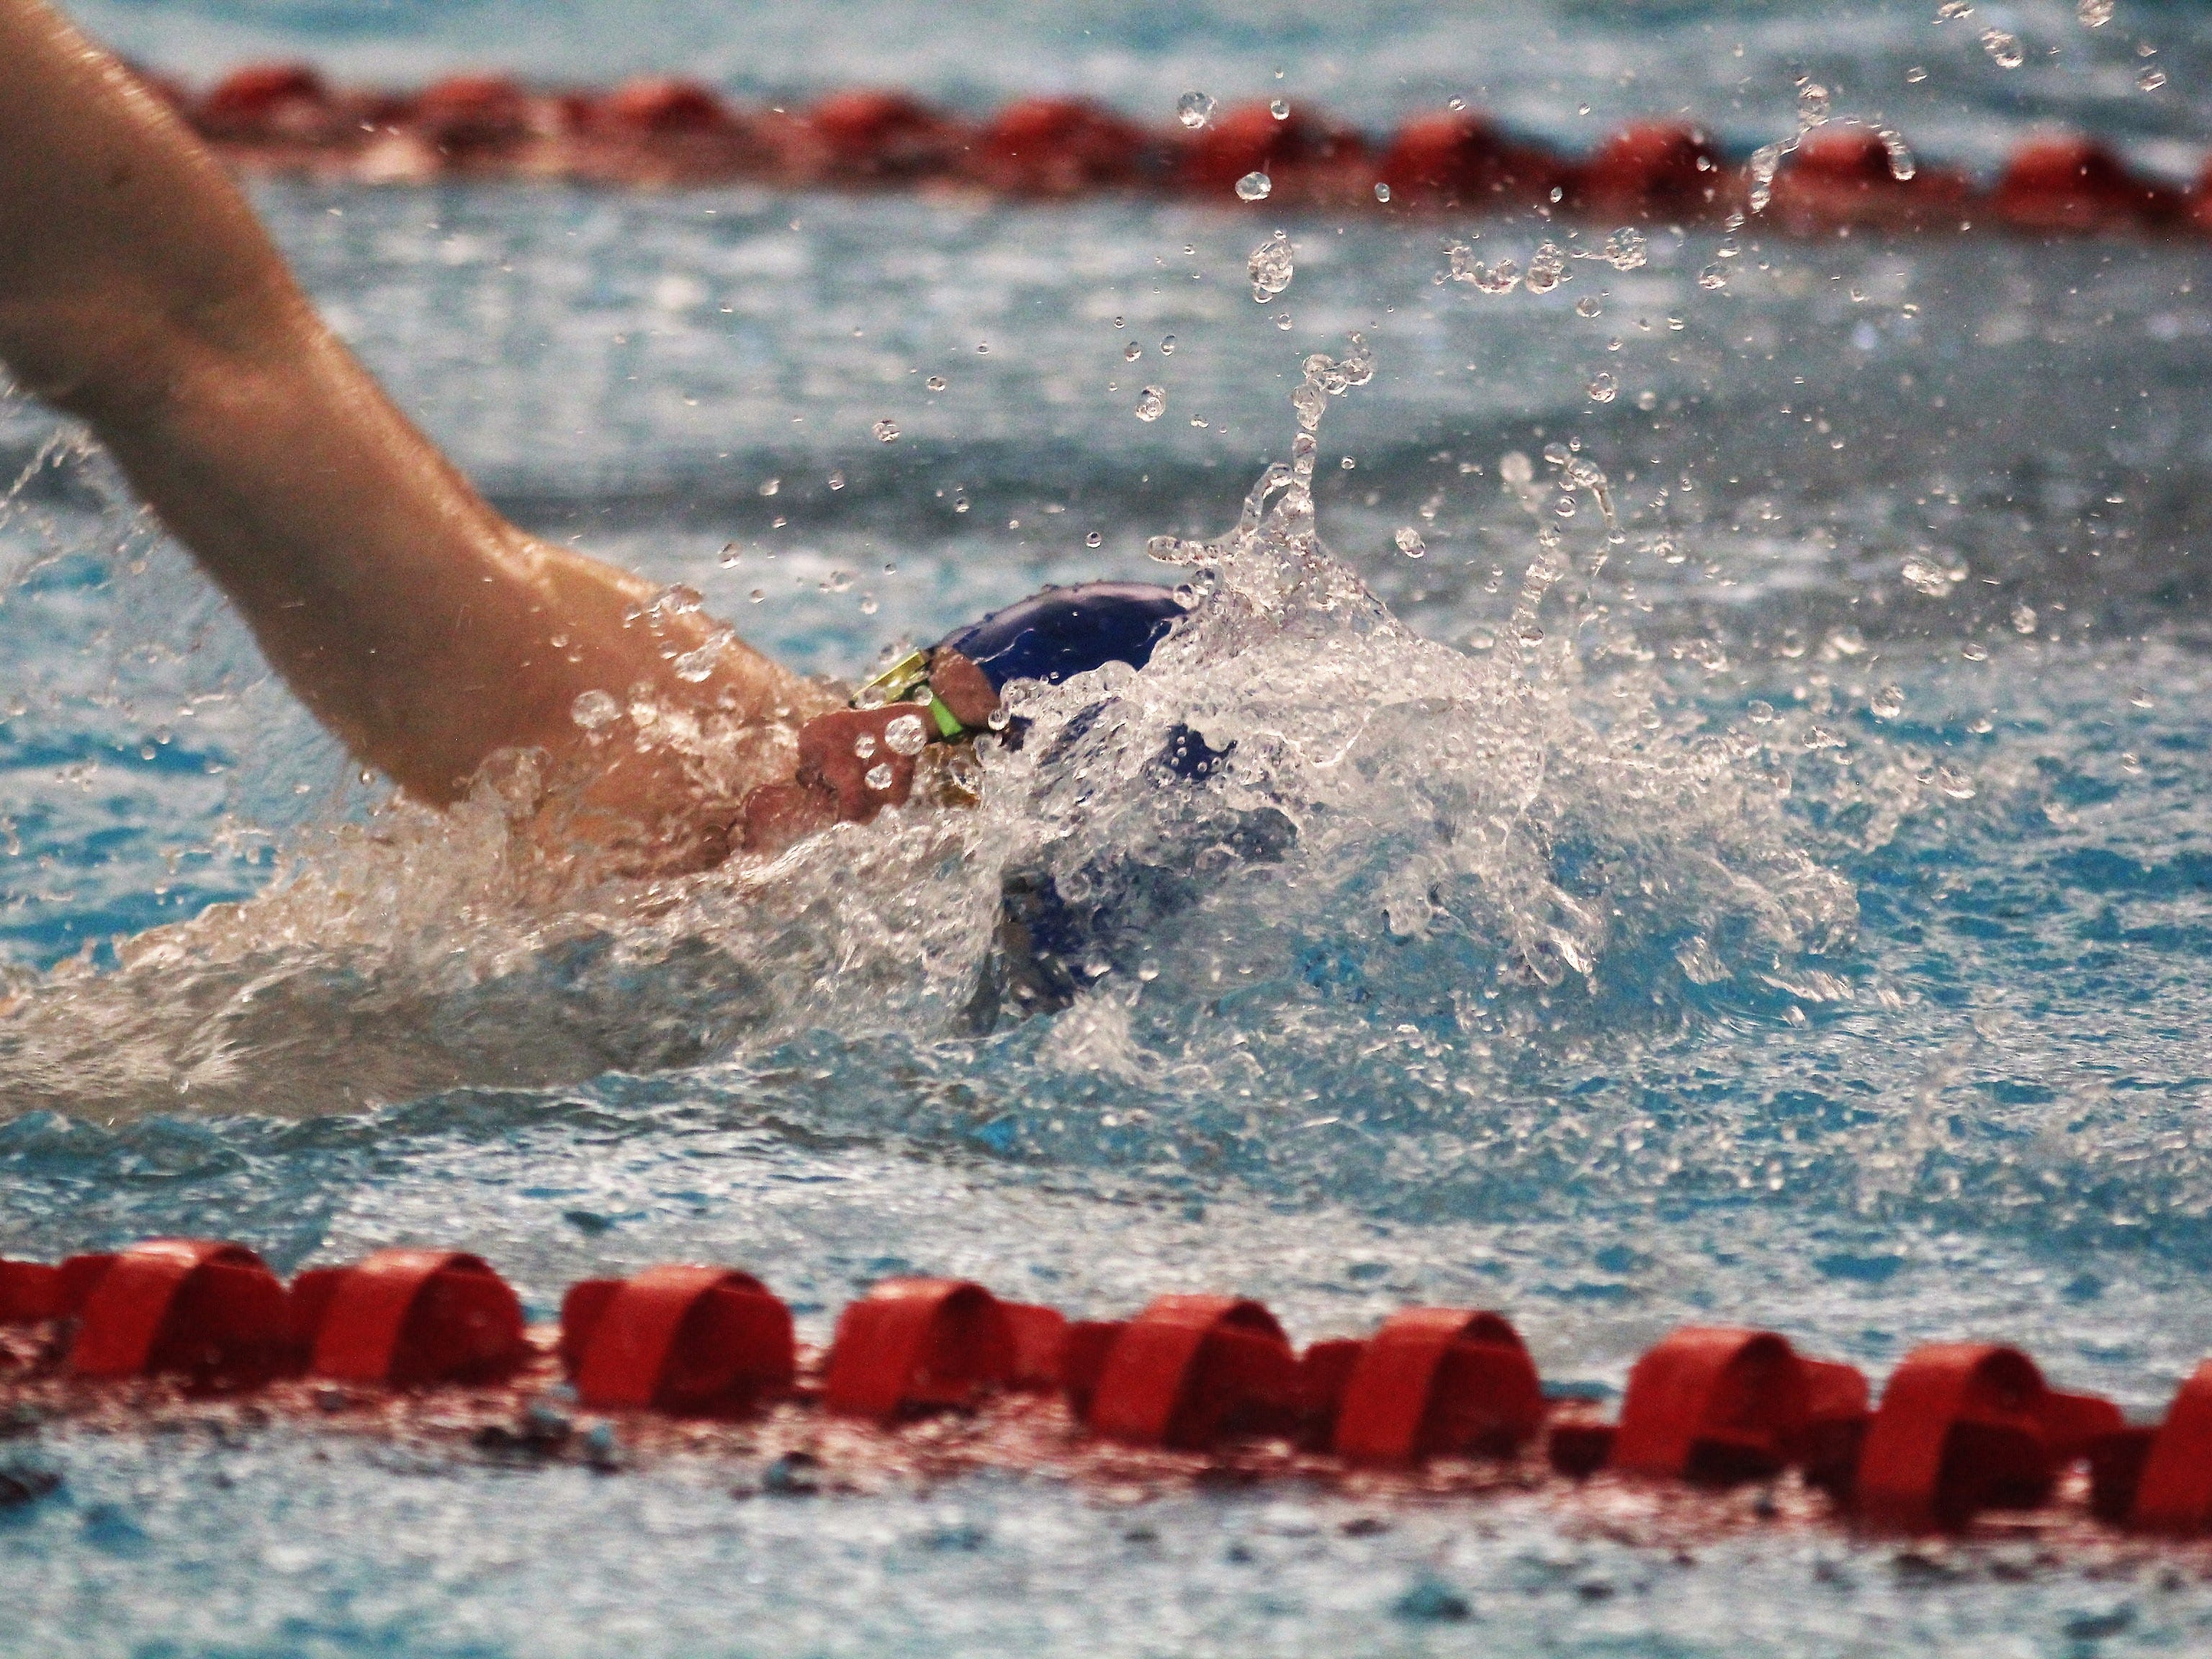 Highlands' Matt Herfel in the 200 IM during the KHSAA state boys swimming and diving championship Feb. 22, 2019 at the University of Louisville.